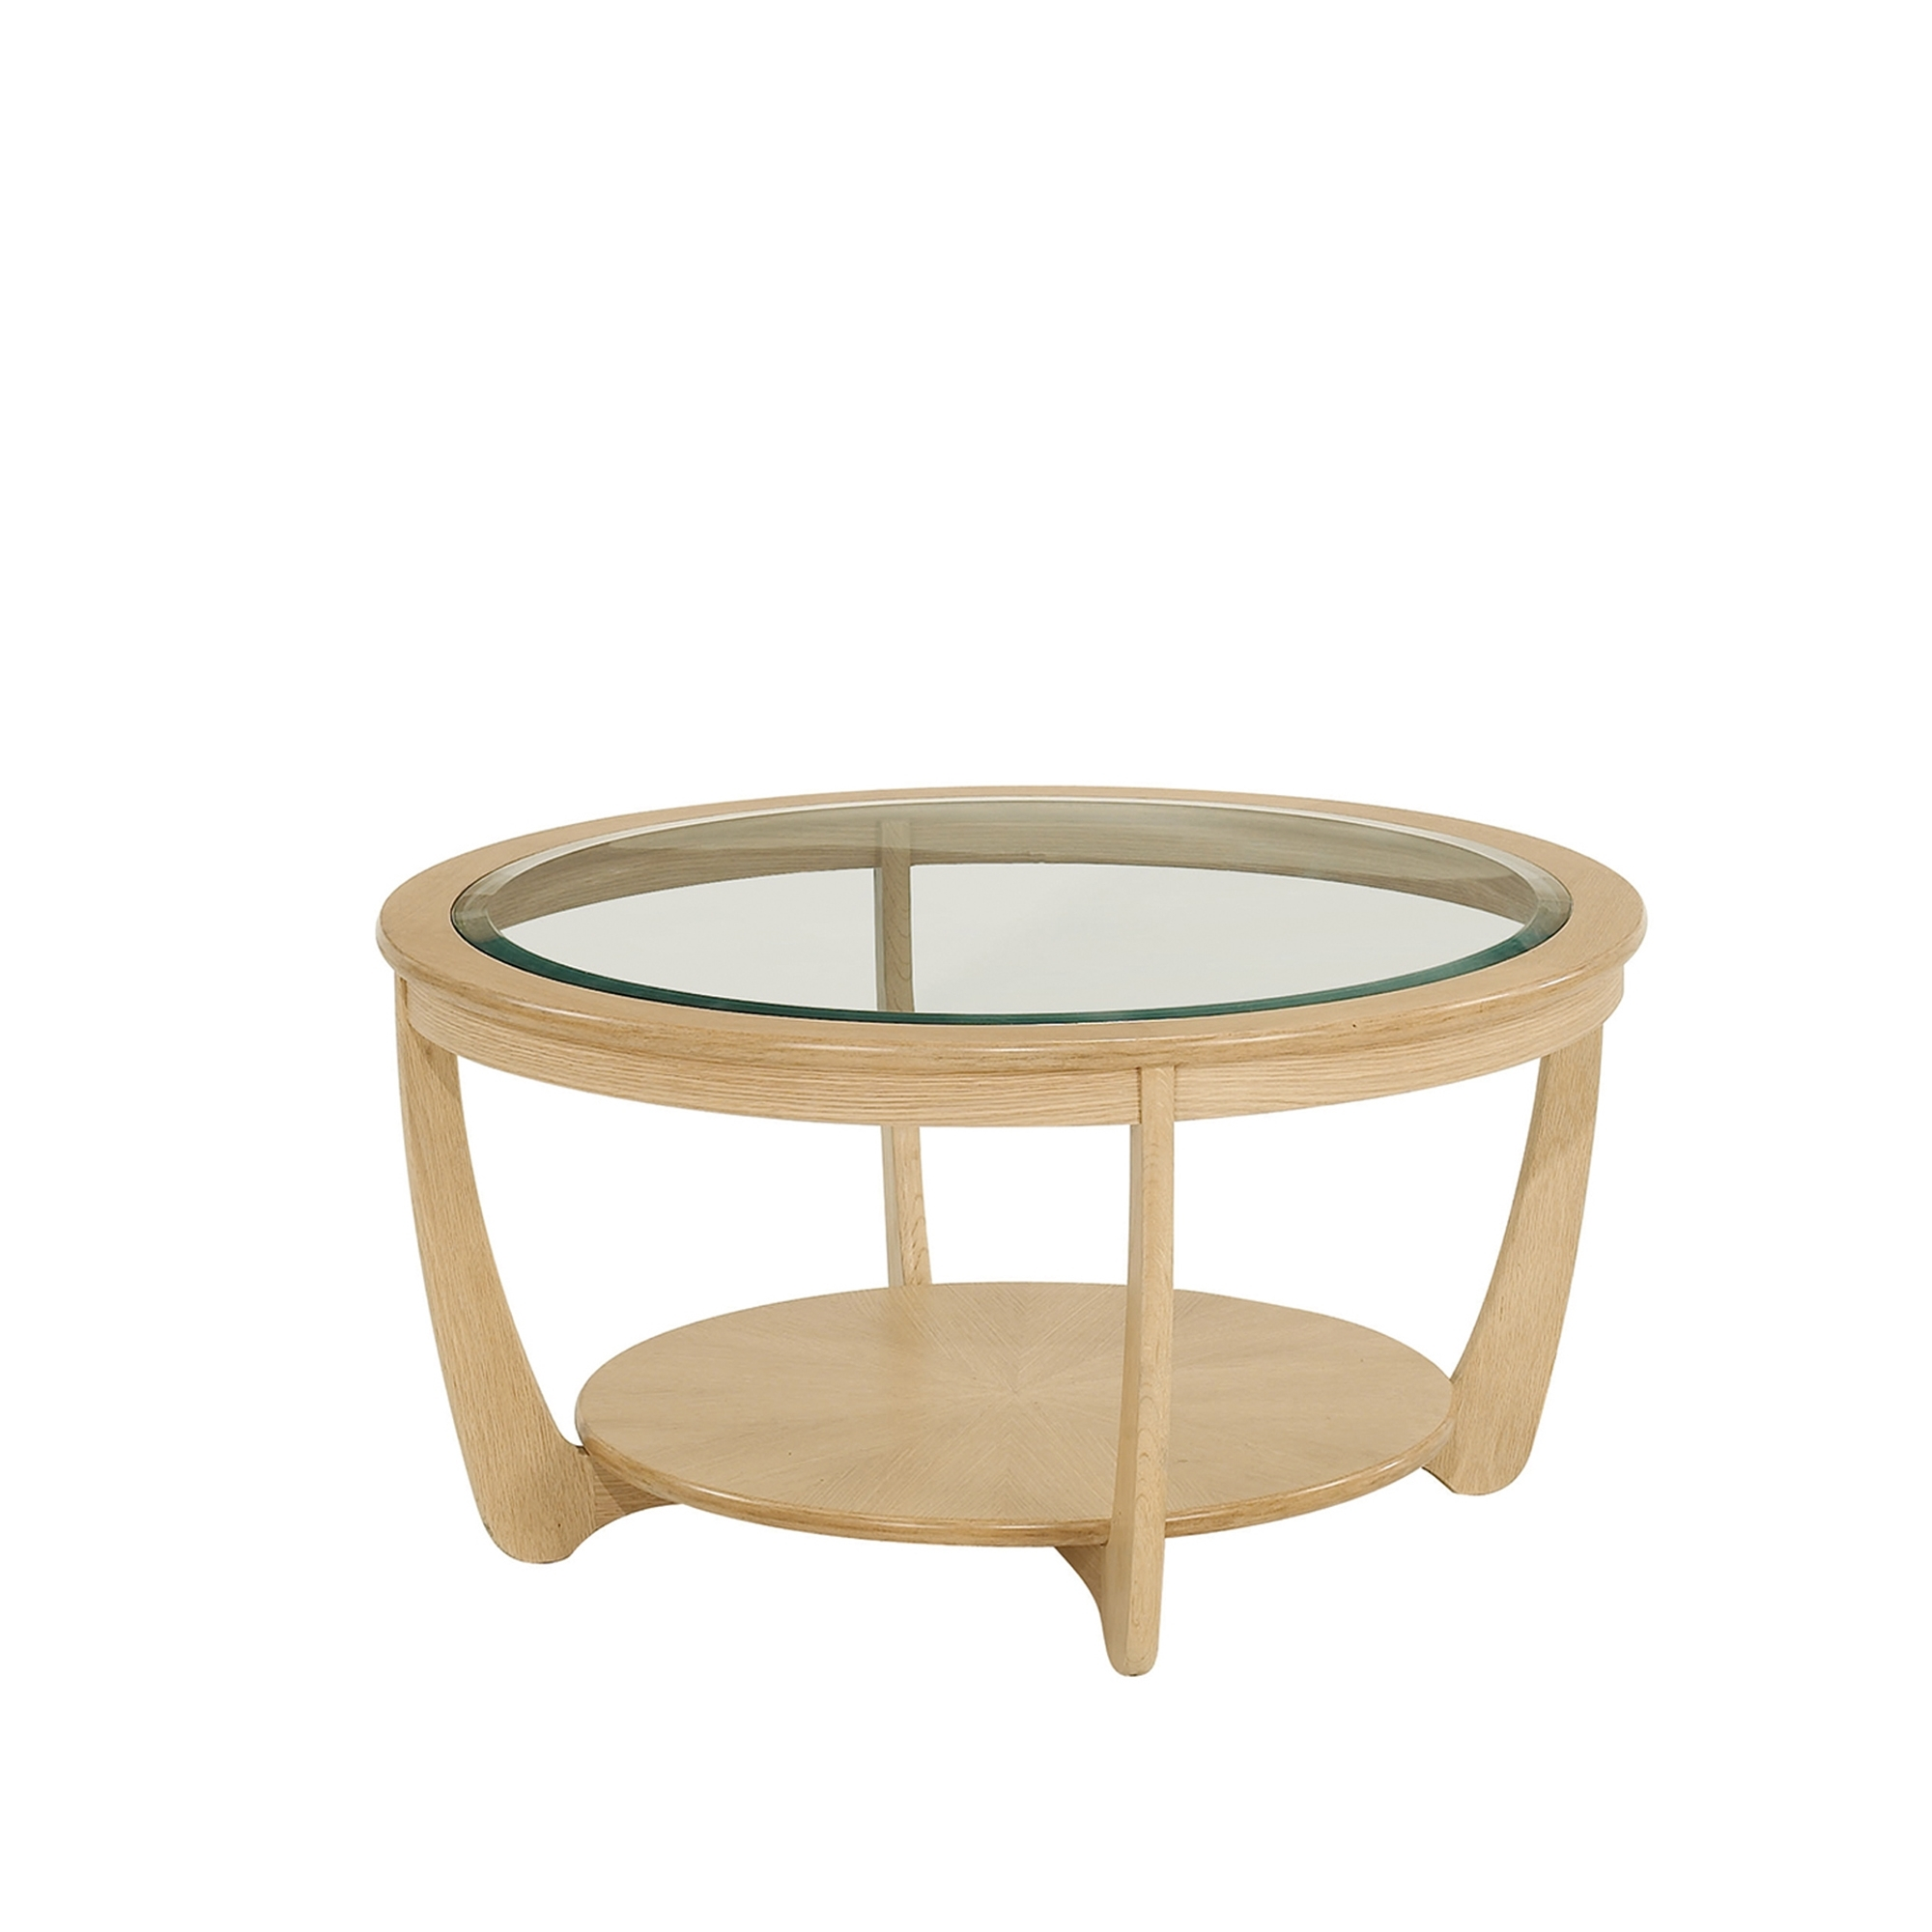 Shades Oak Nathan Shades Oak Glass Top Round Coffee Table